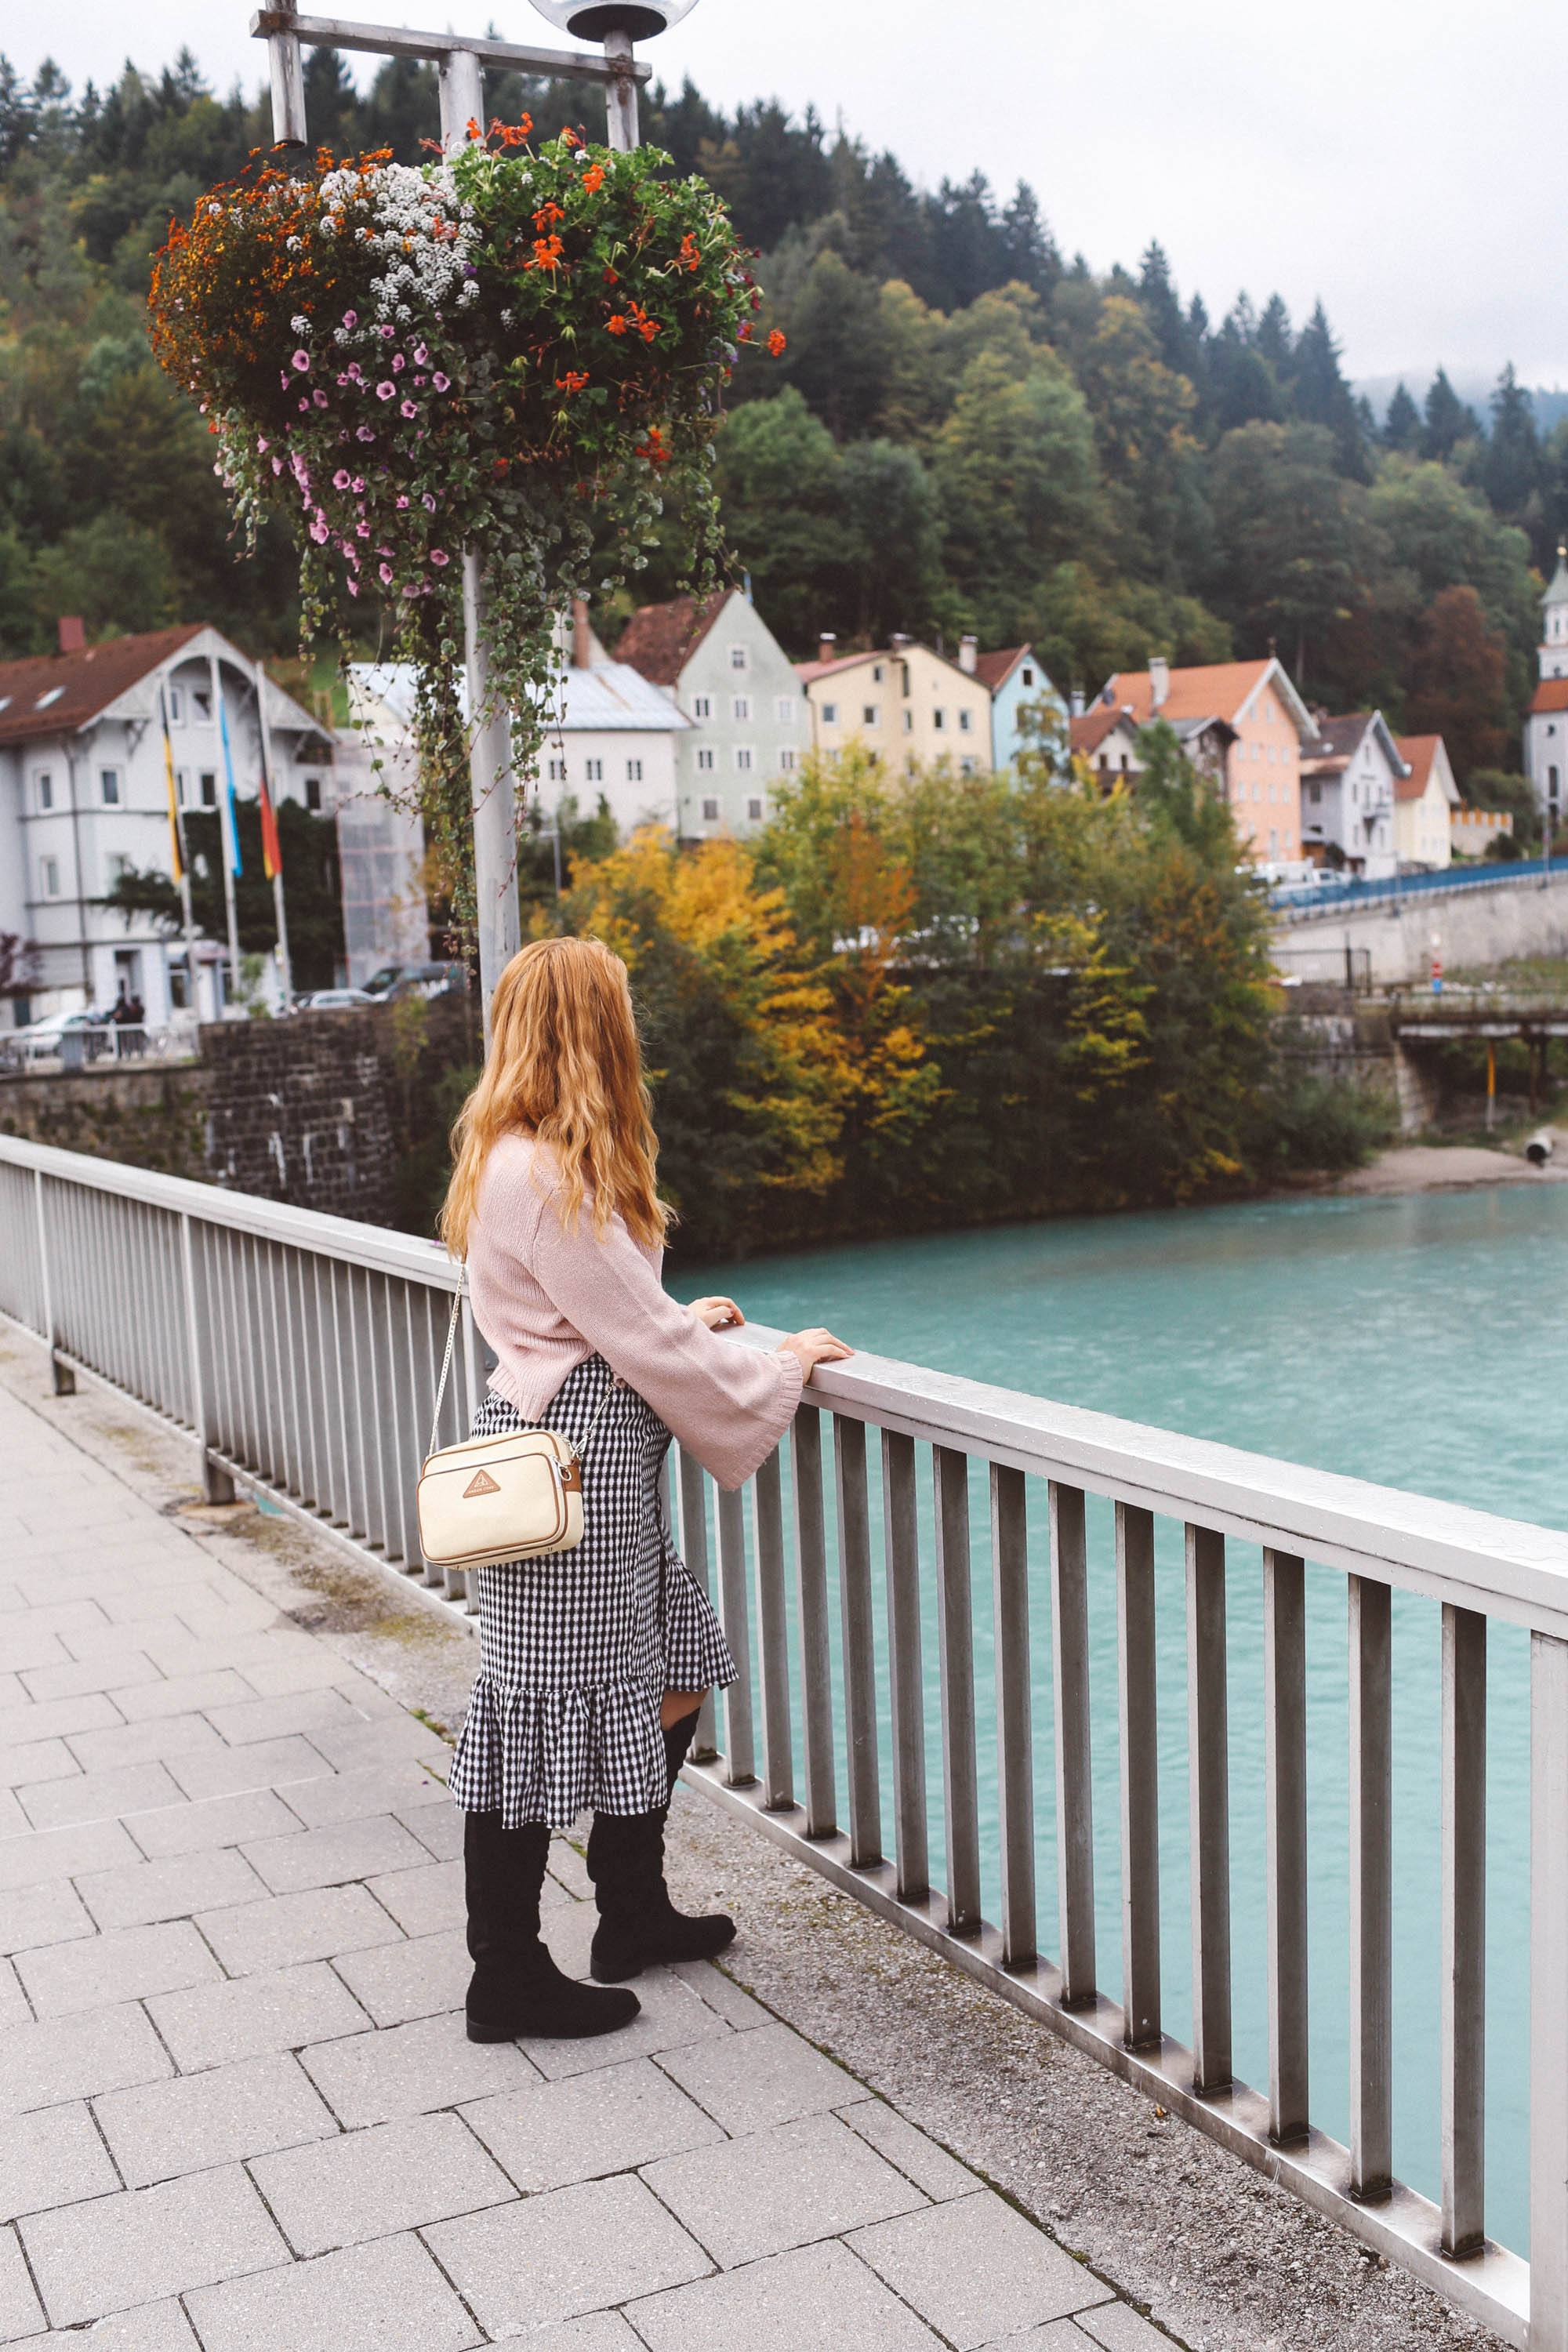 Füssen, Germany pink sweater gingham skirt river water houses